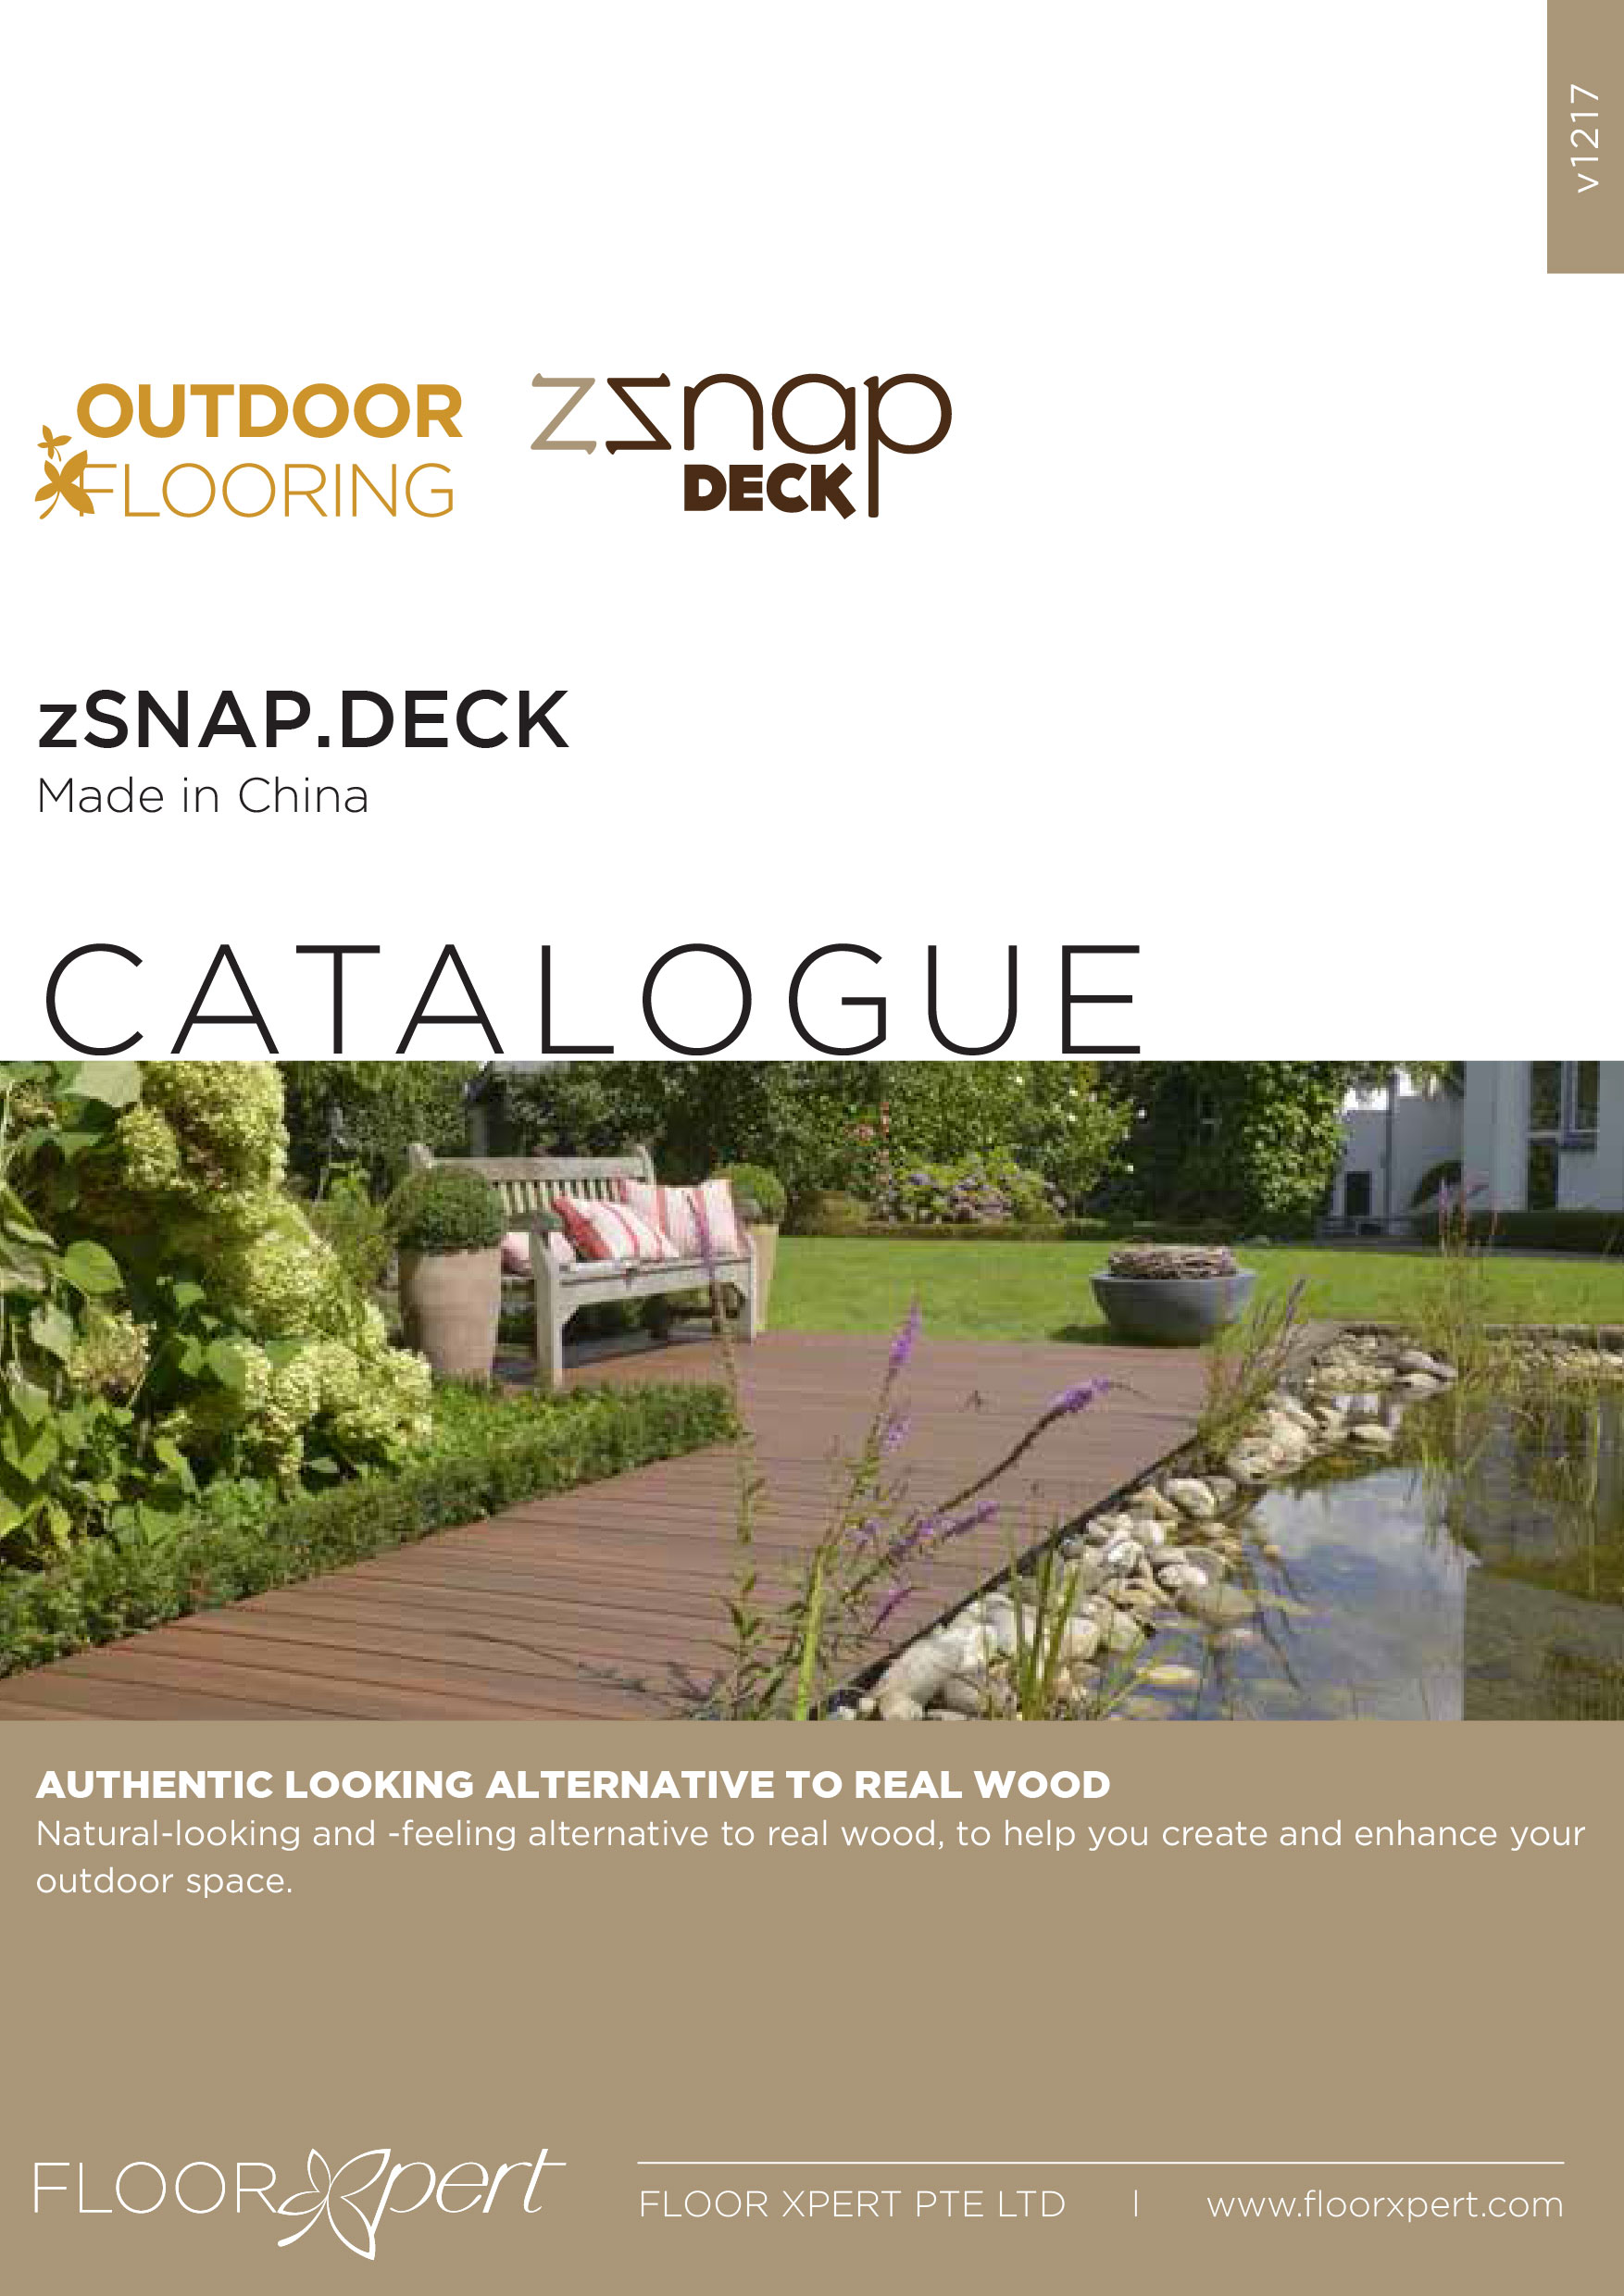 zSNAP DECK CATALOGUE